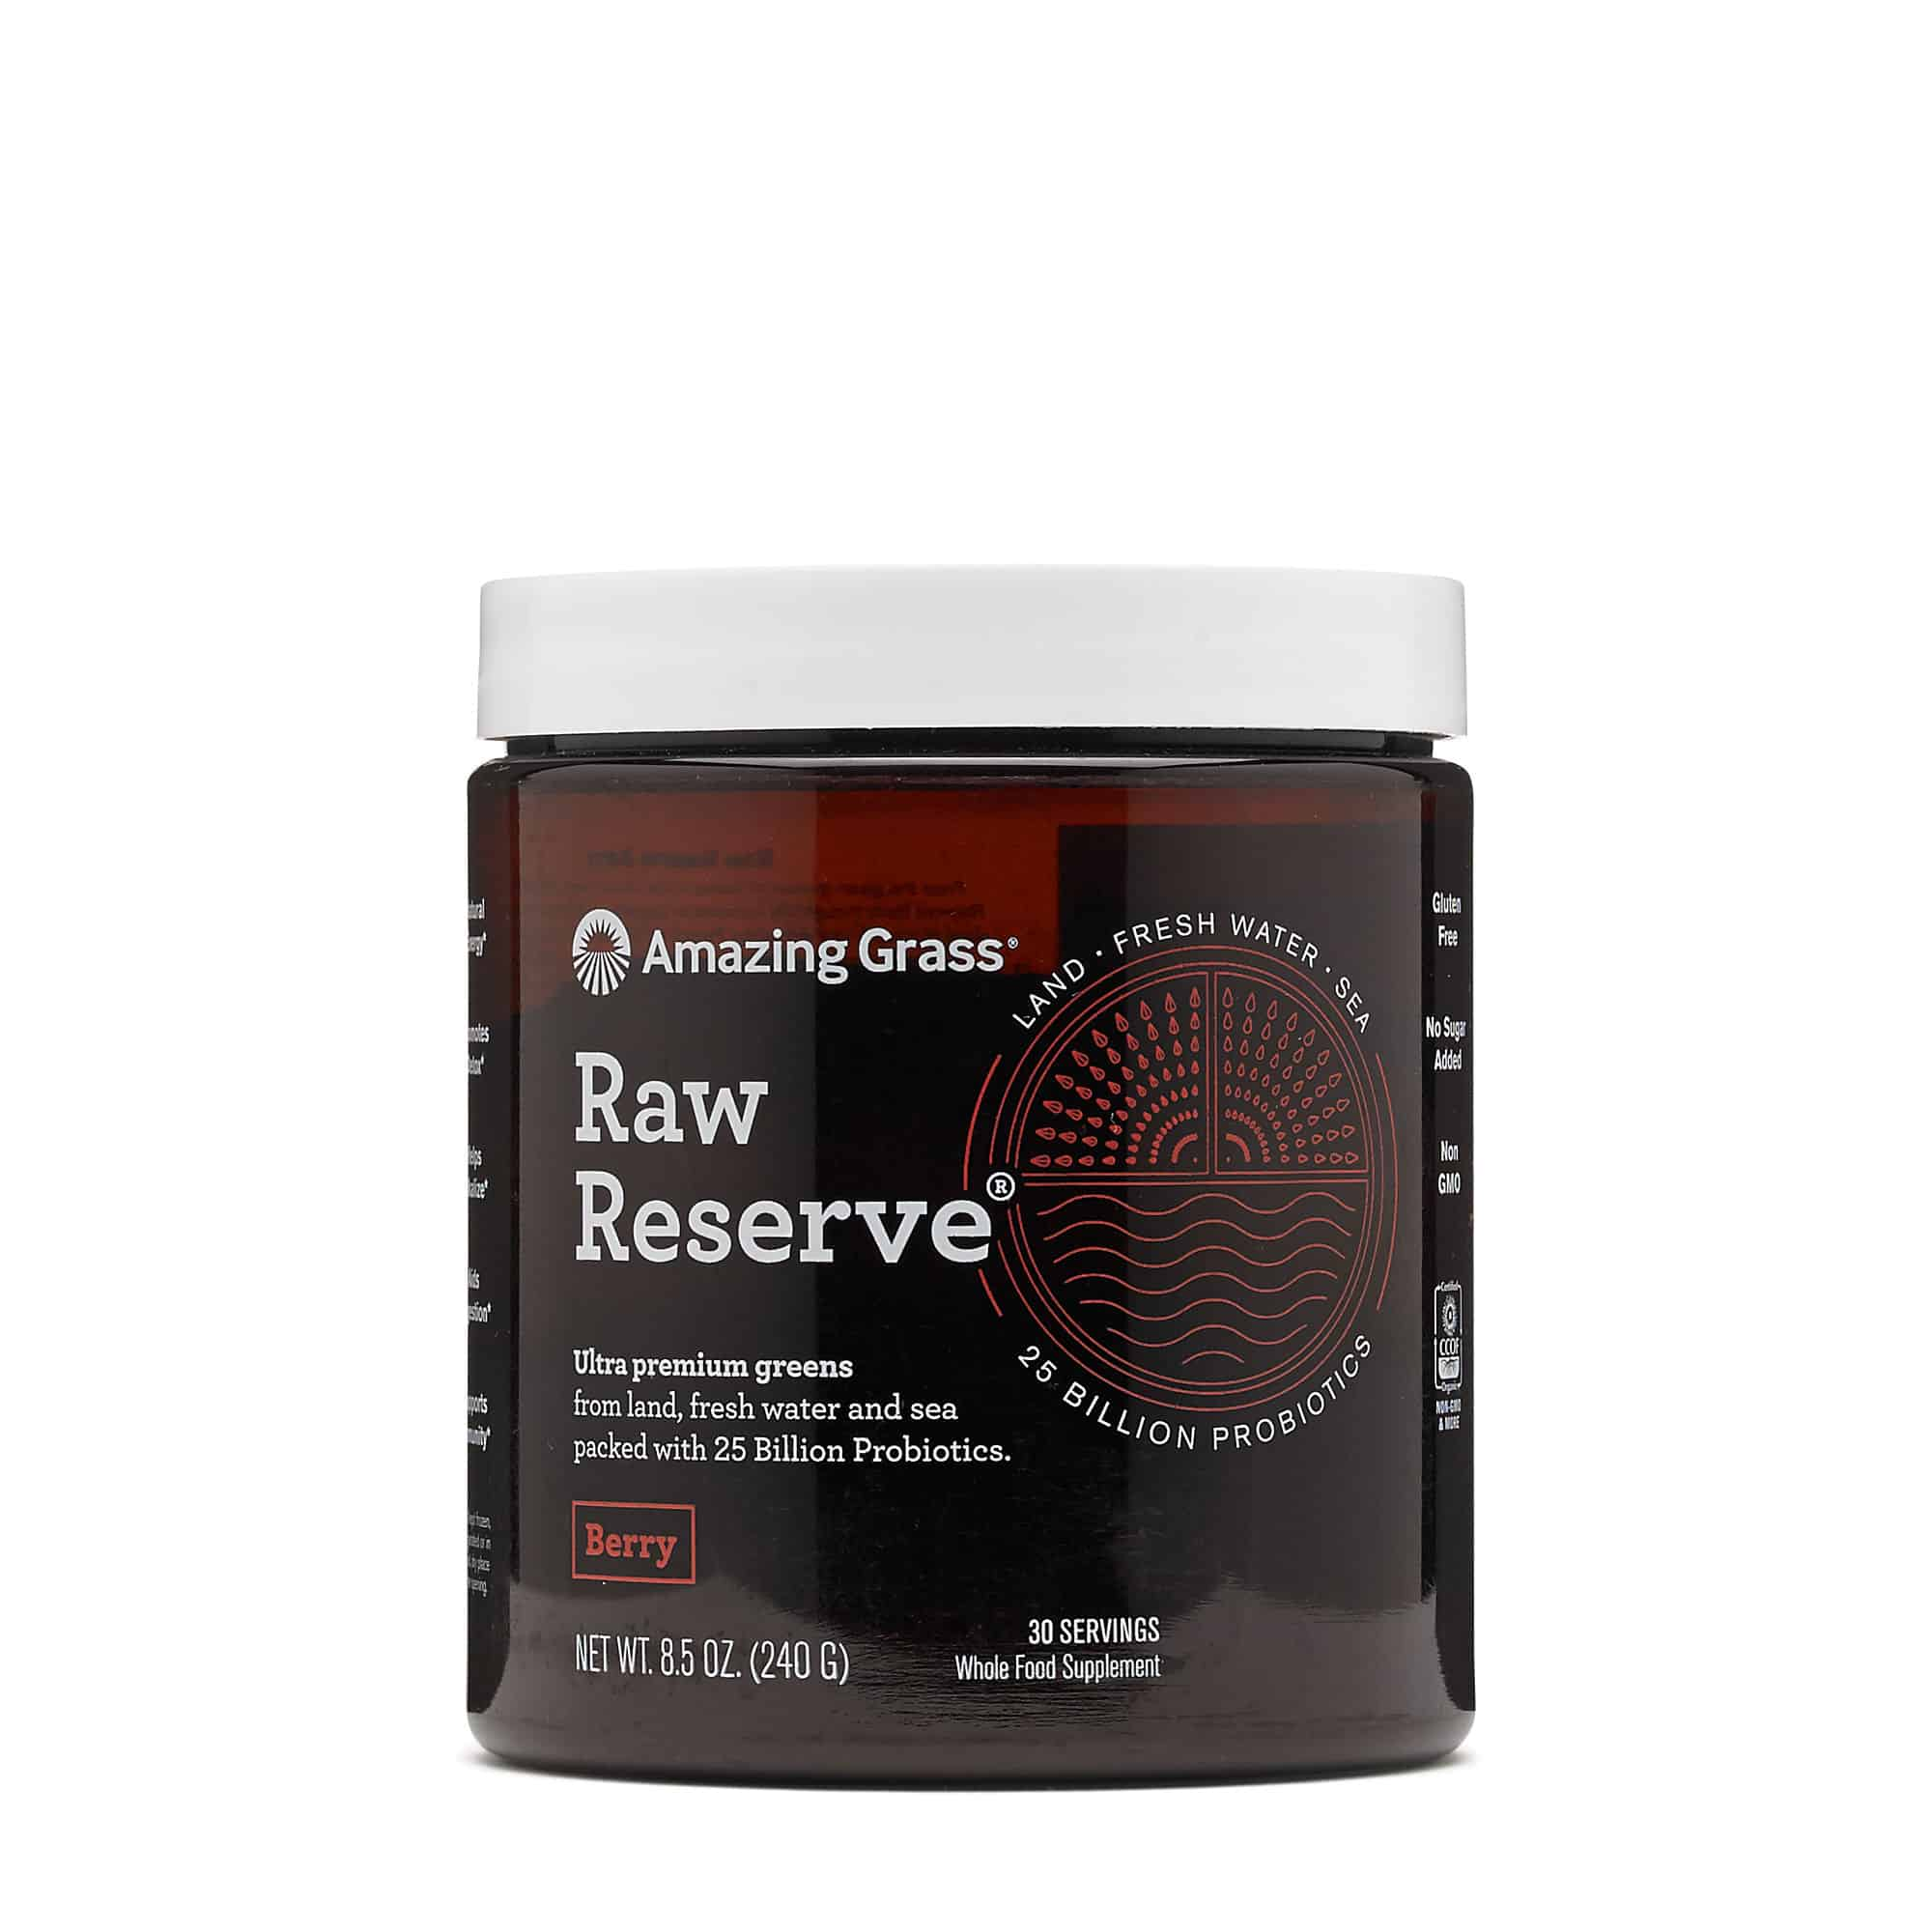 The Amazing Grass Raw Reserve Review 2019